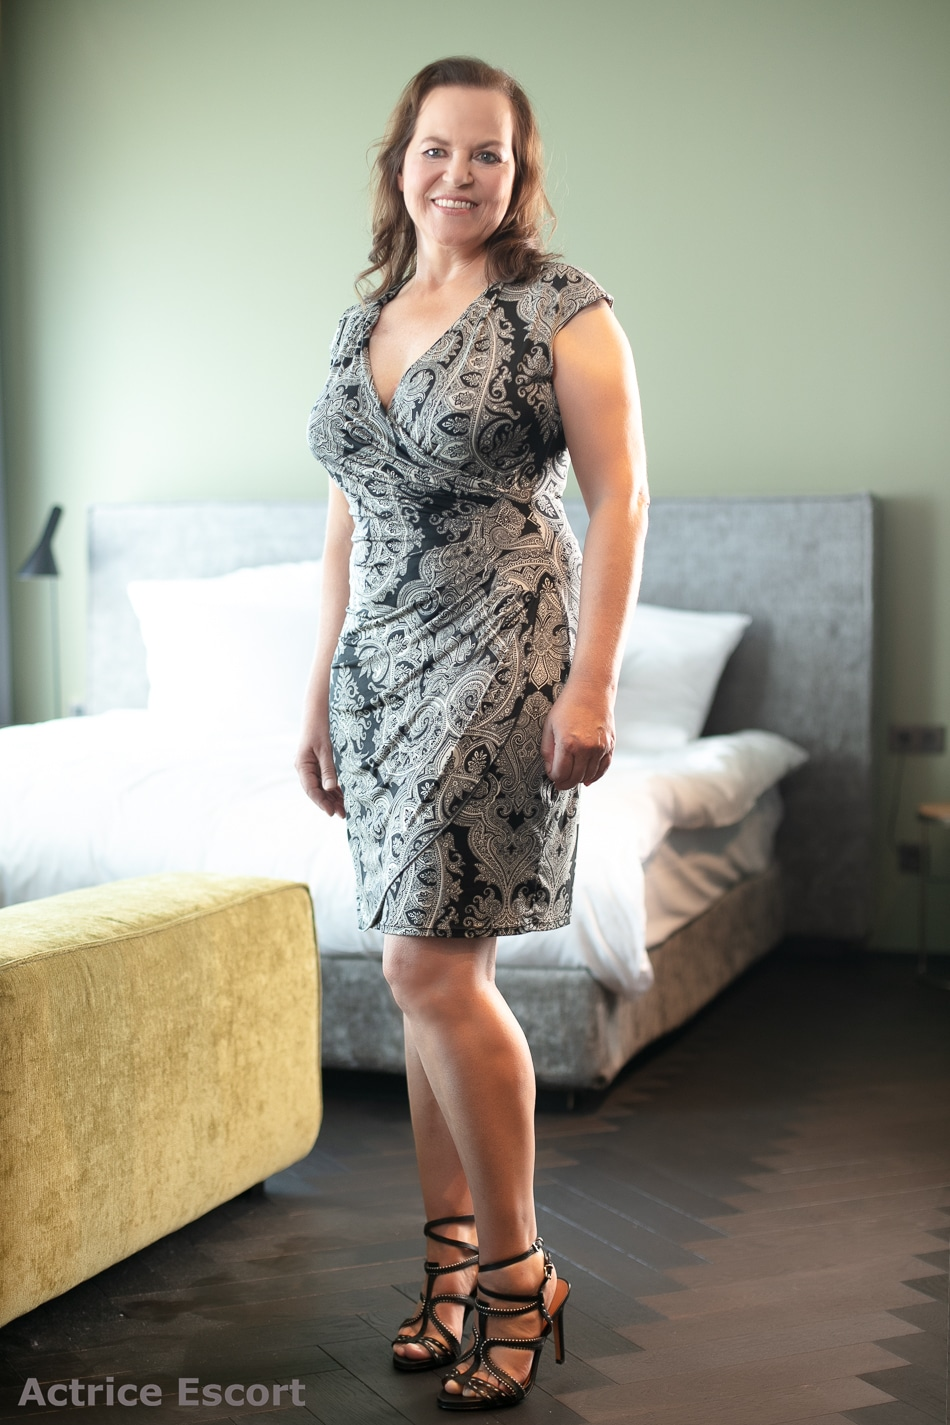 Bettina Escortservice Duesseldorf(7)